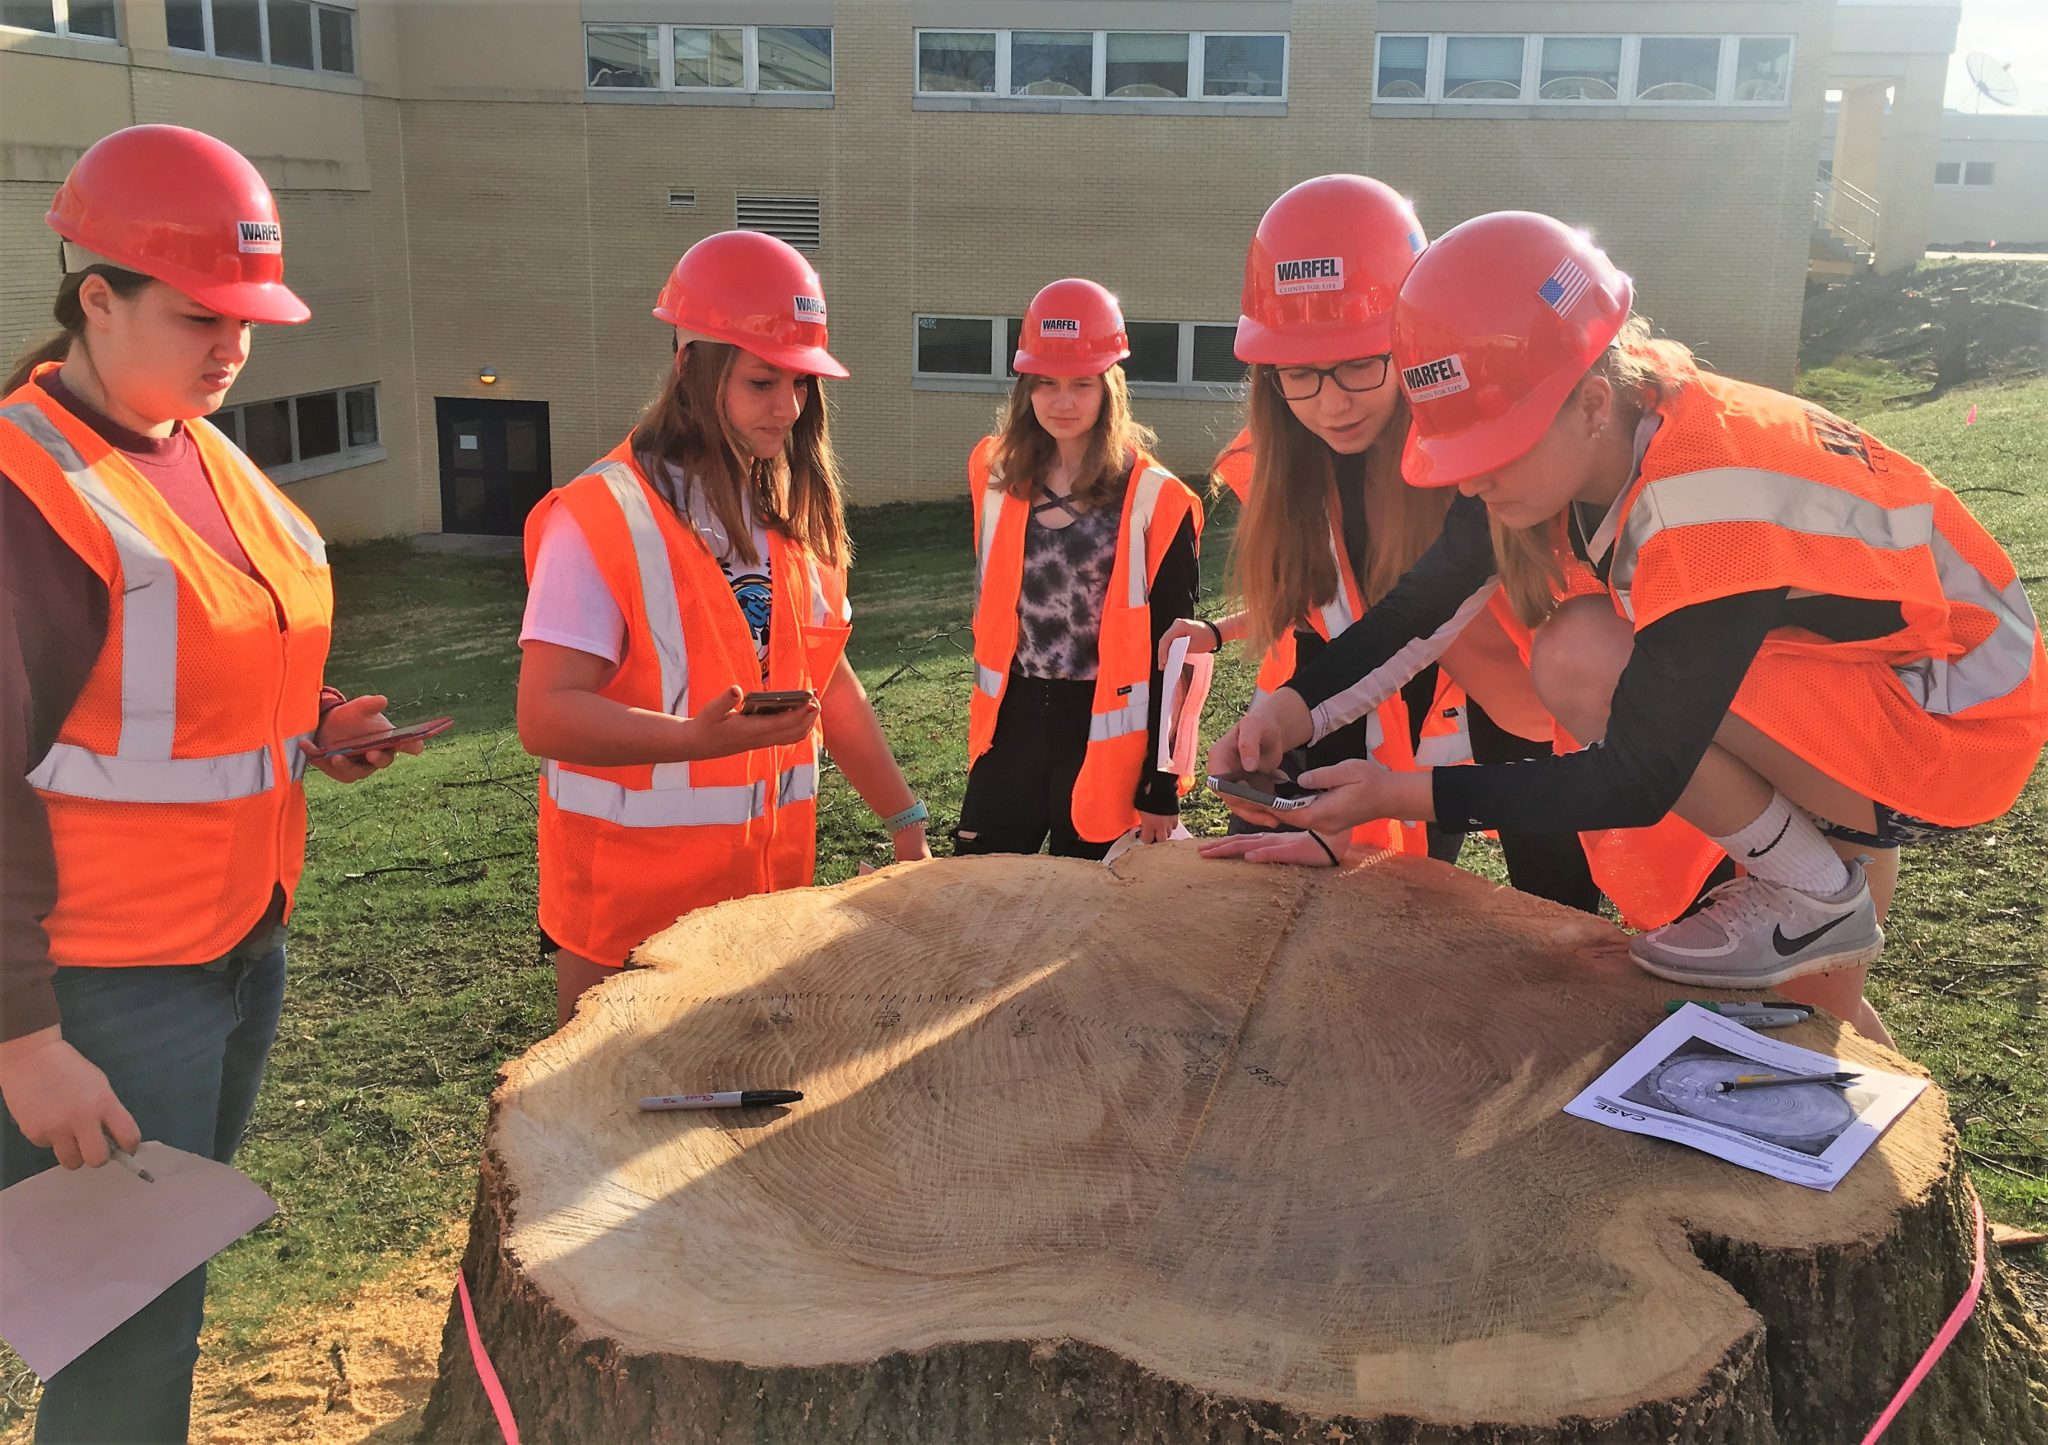 Plant Science students examining the rings on a tree stump.